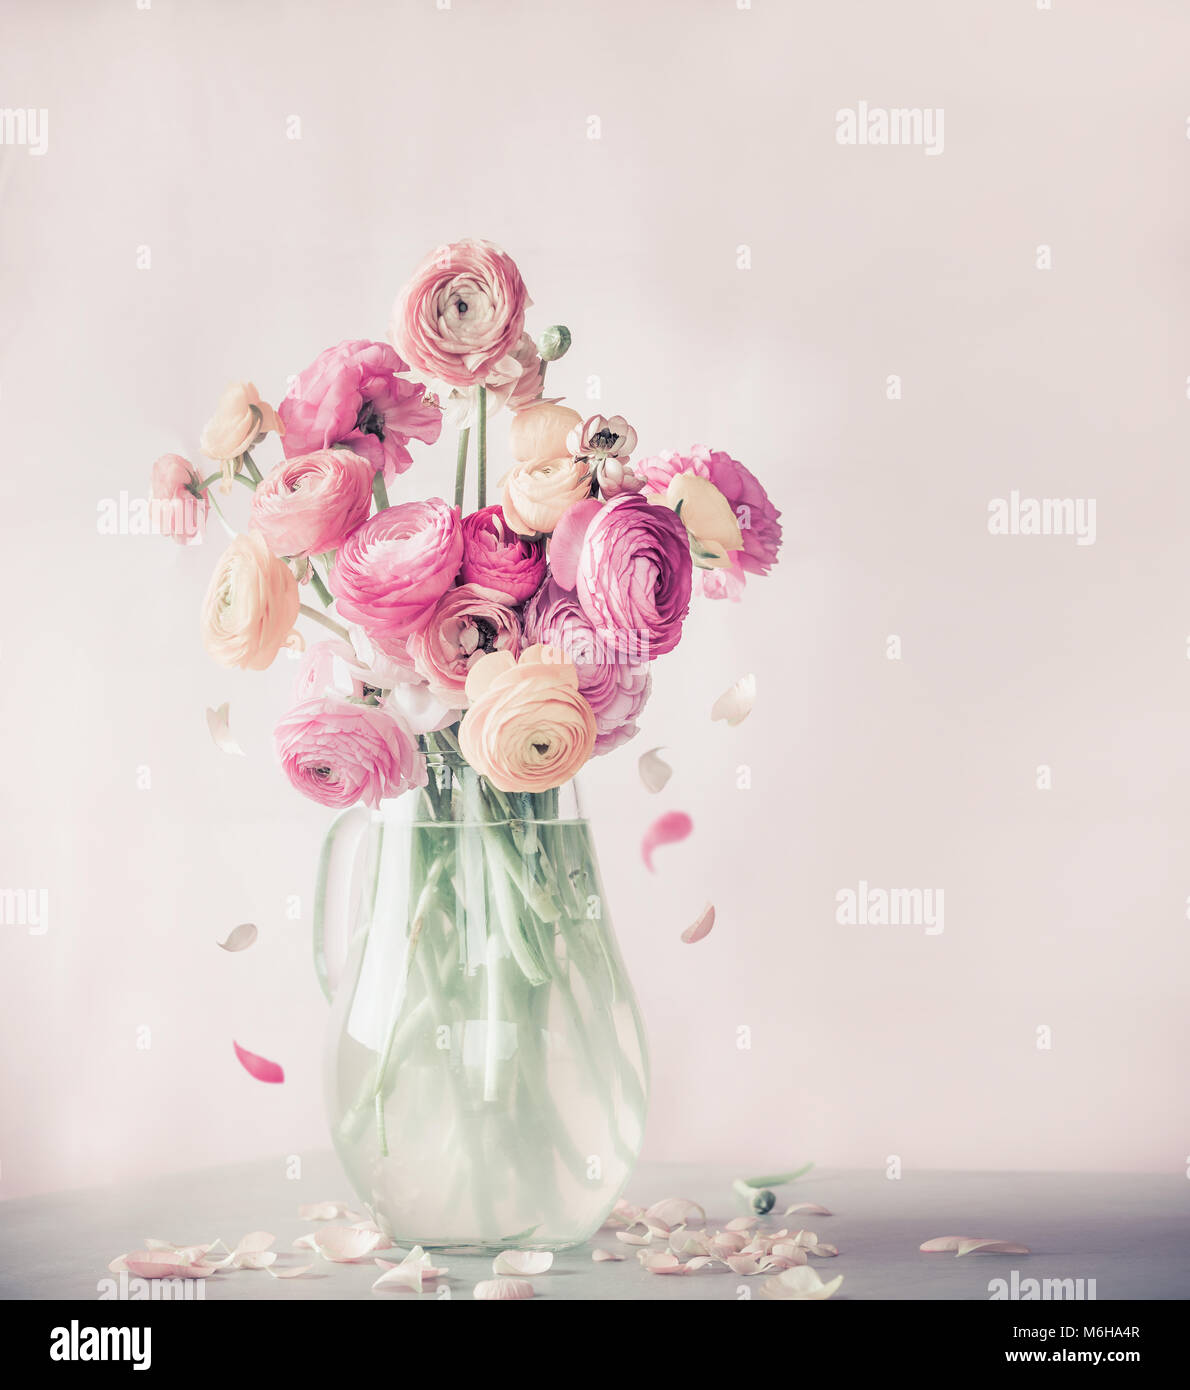 Pastel color ranunculus flowers bouquet with falling petals in glass vase on table, front view - Stock Image